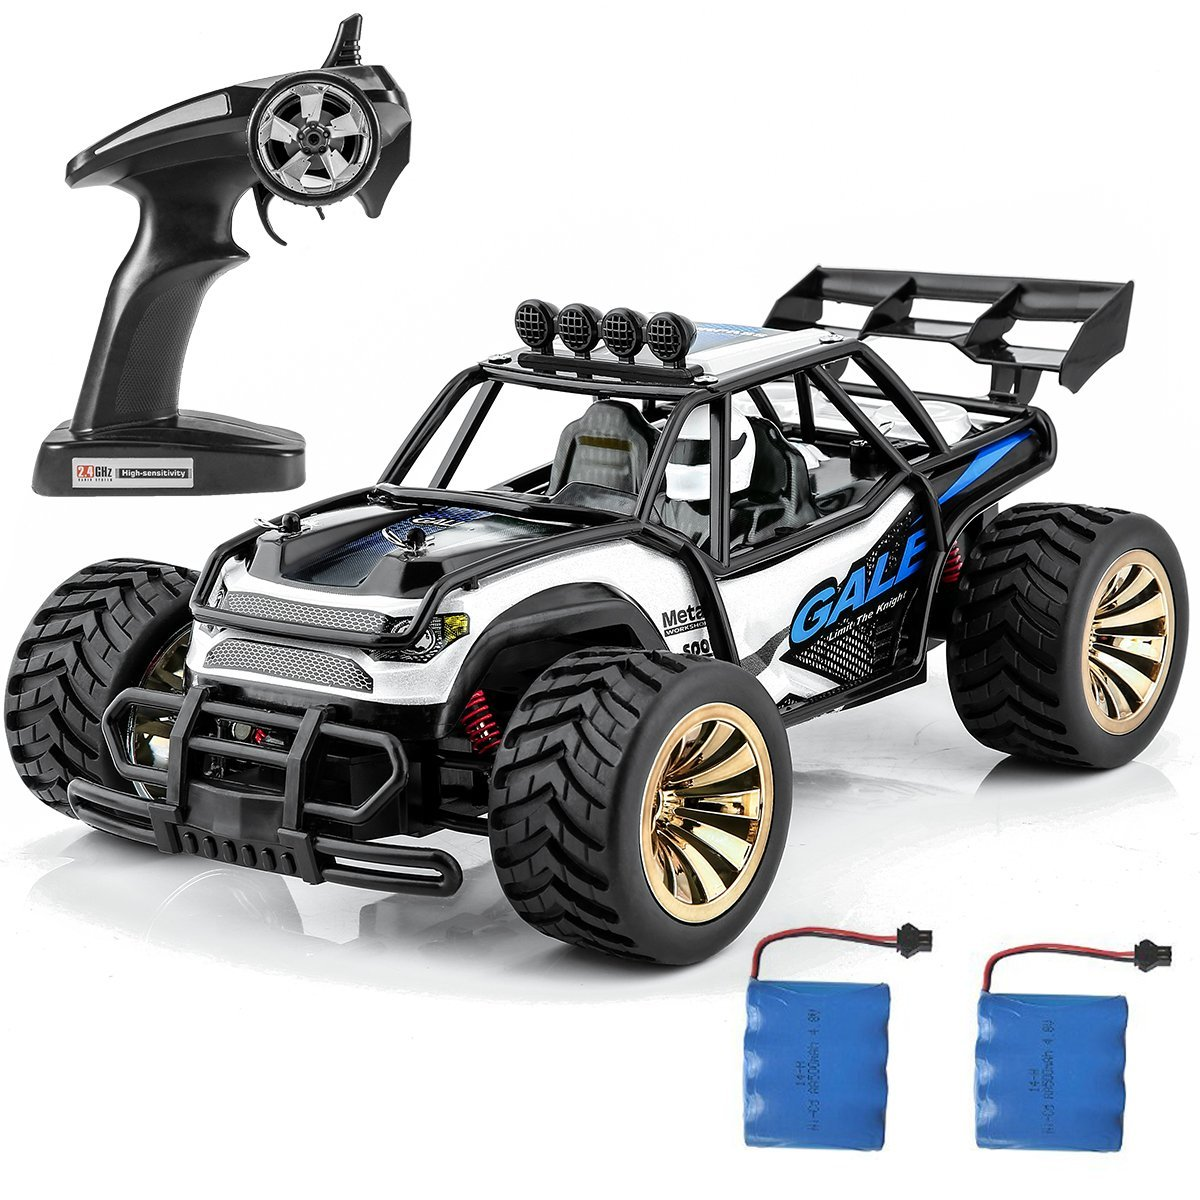 Distianert 1-16 Scale Electric RC Car Off Road Vehicle $50.99